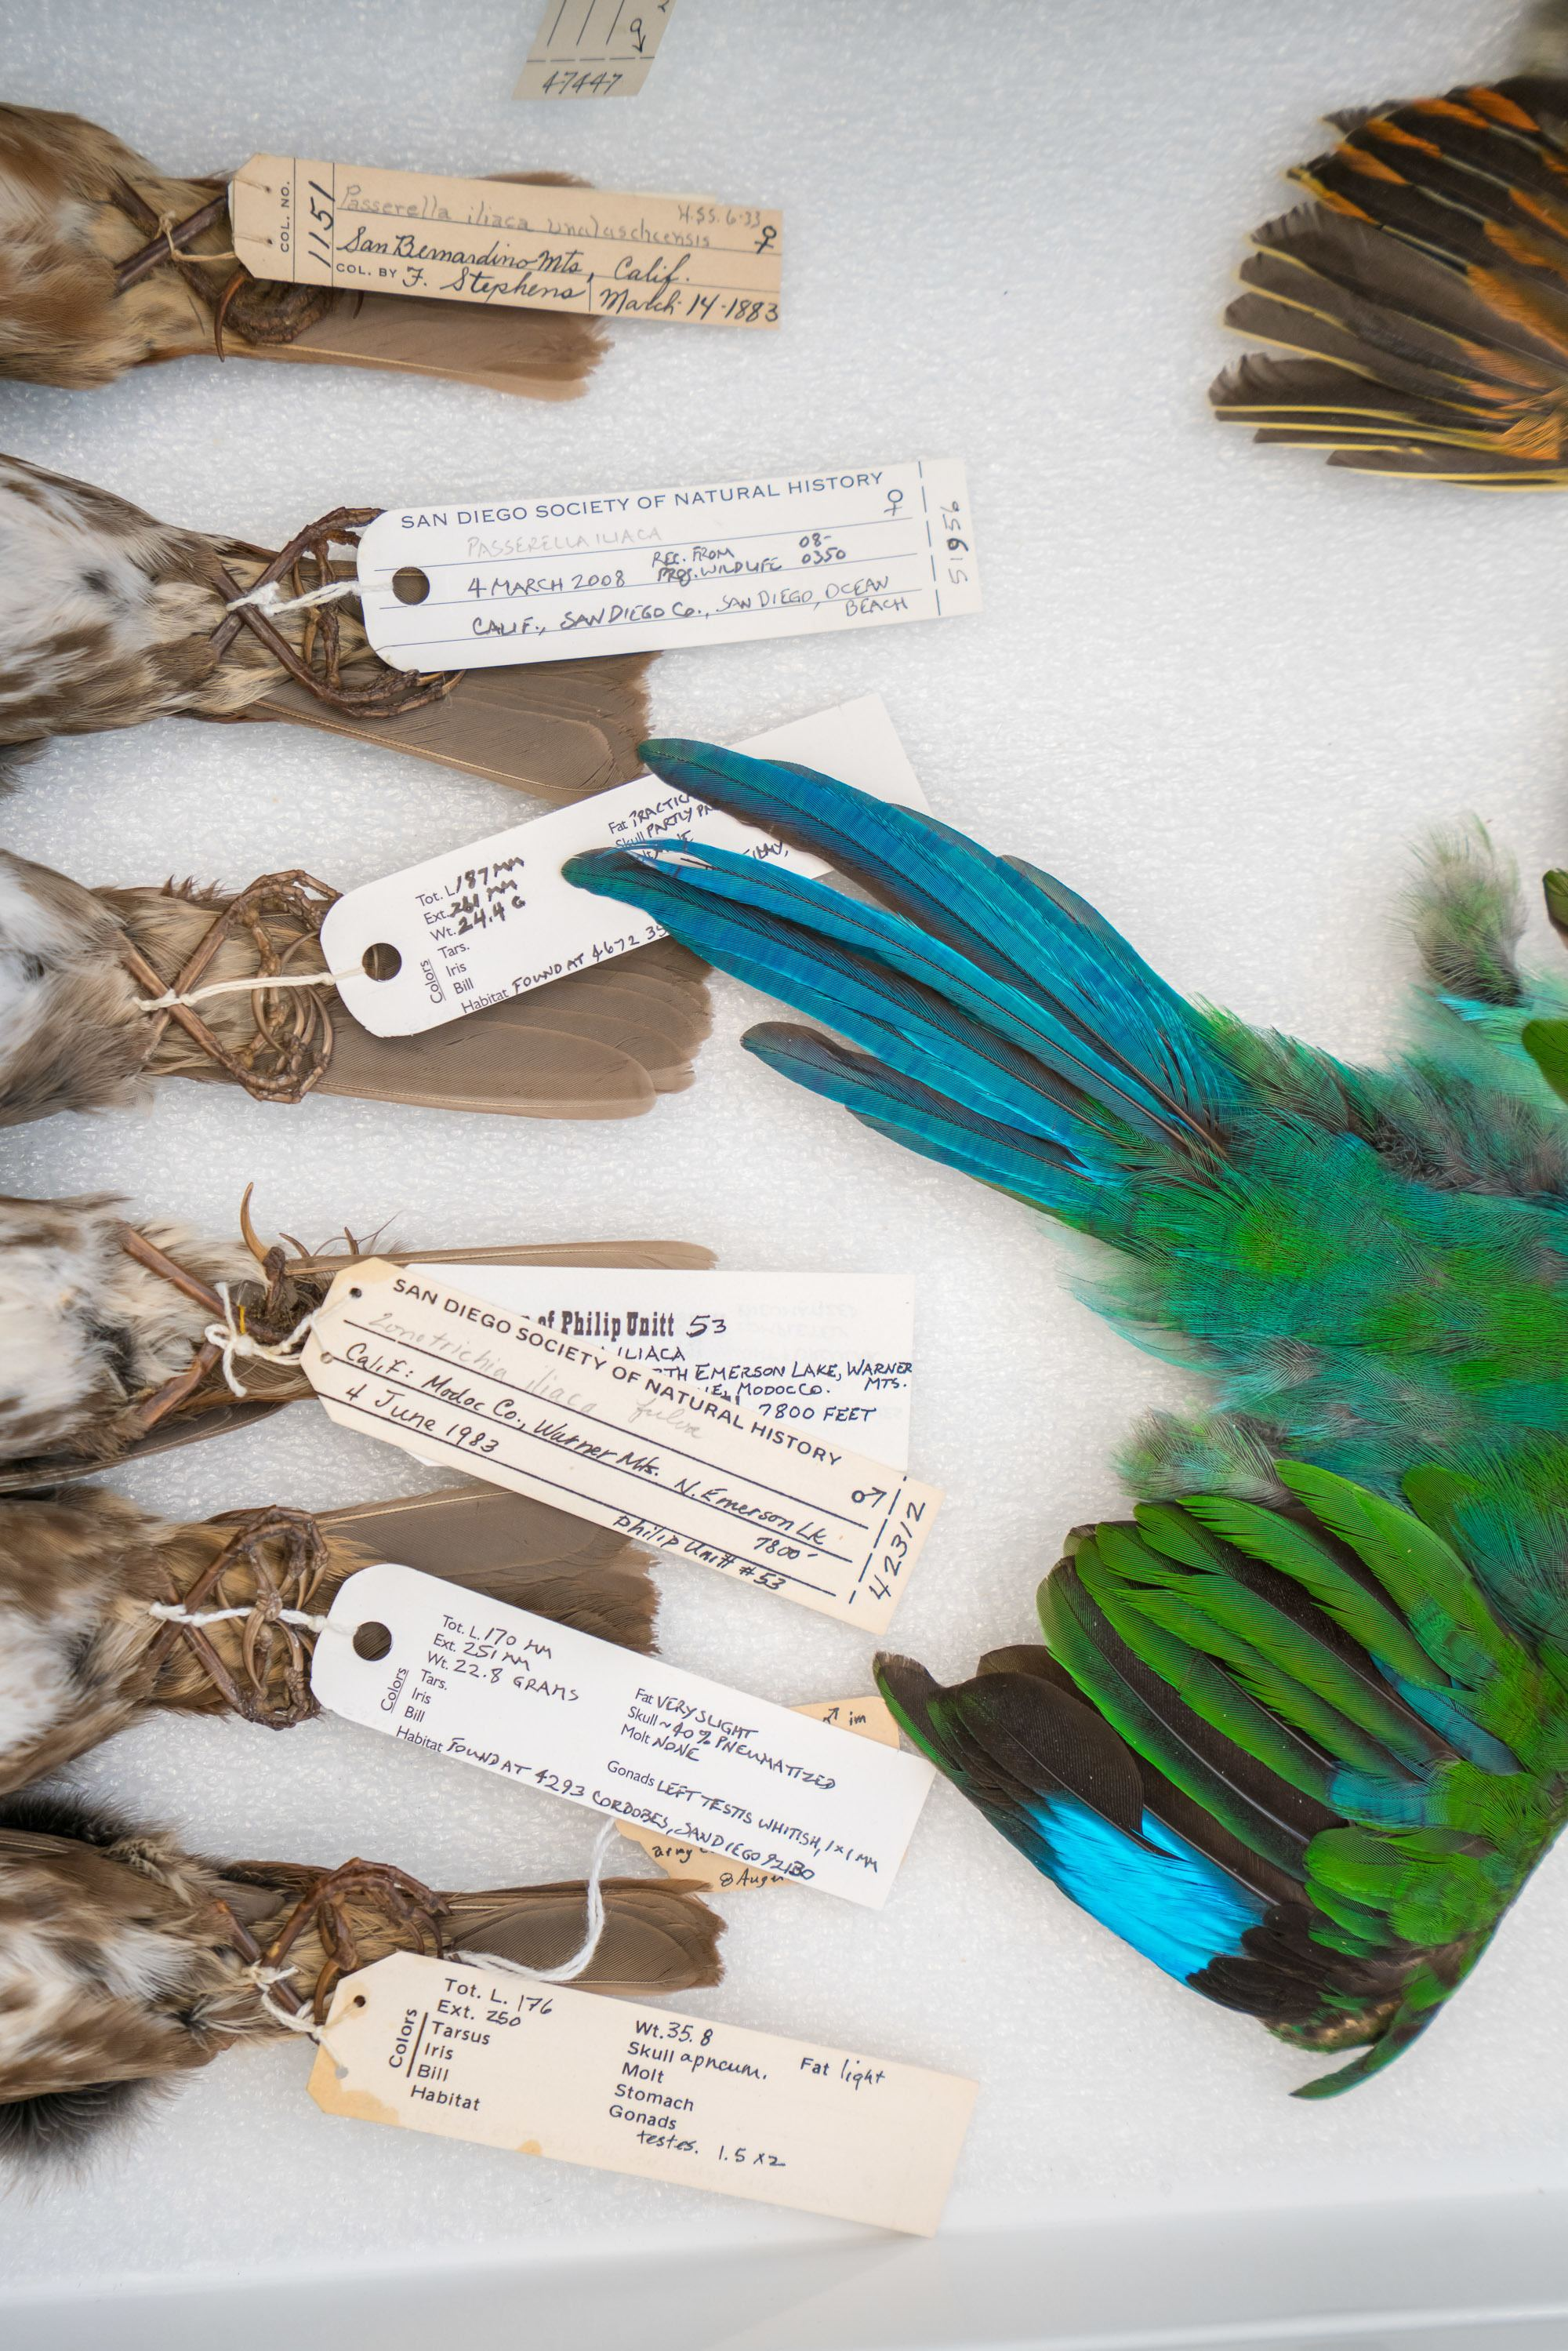 The sparrow collection at San Diego Natural History Museum dates back to 1883.